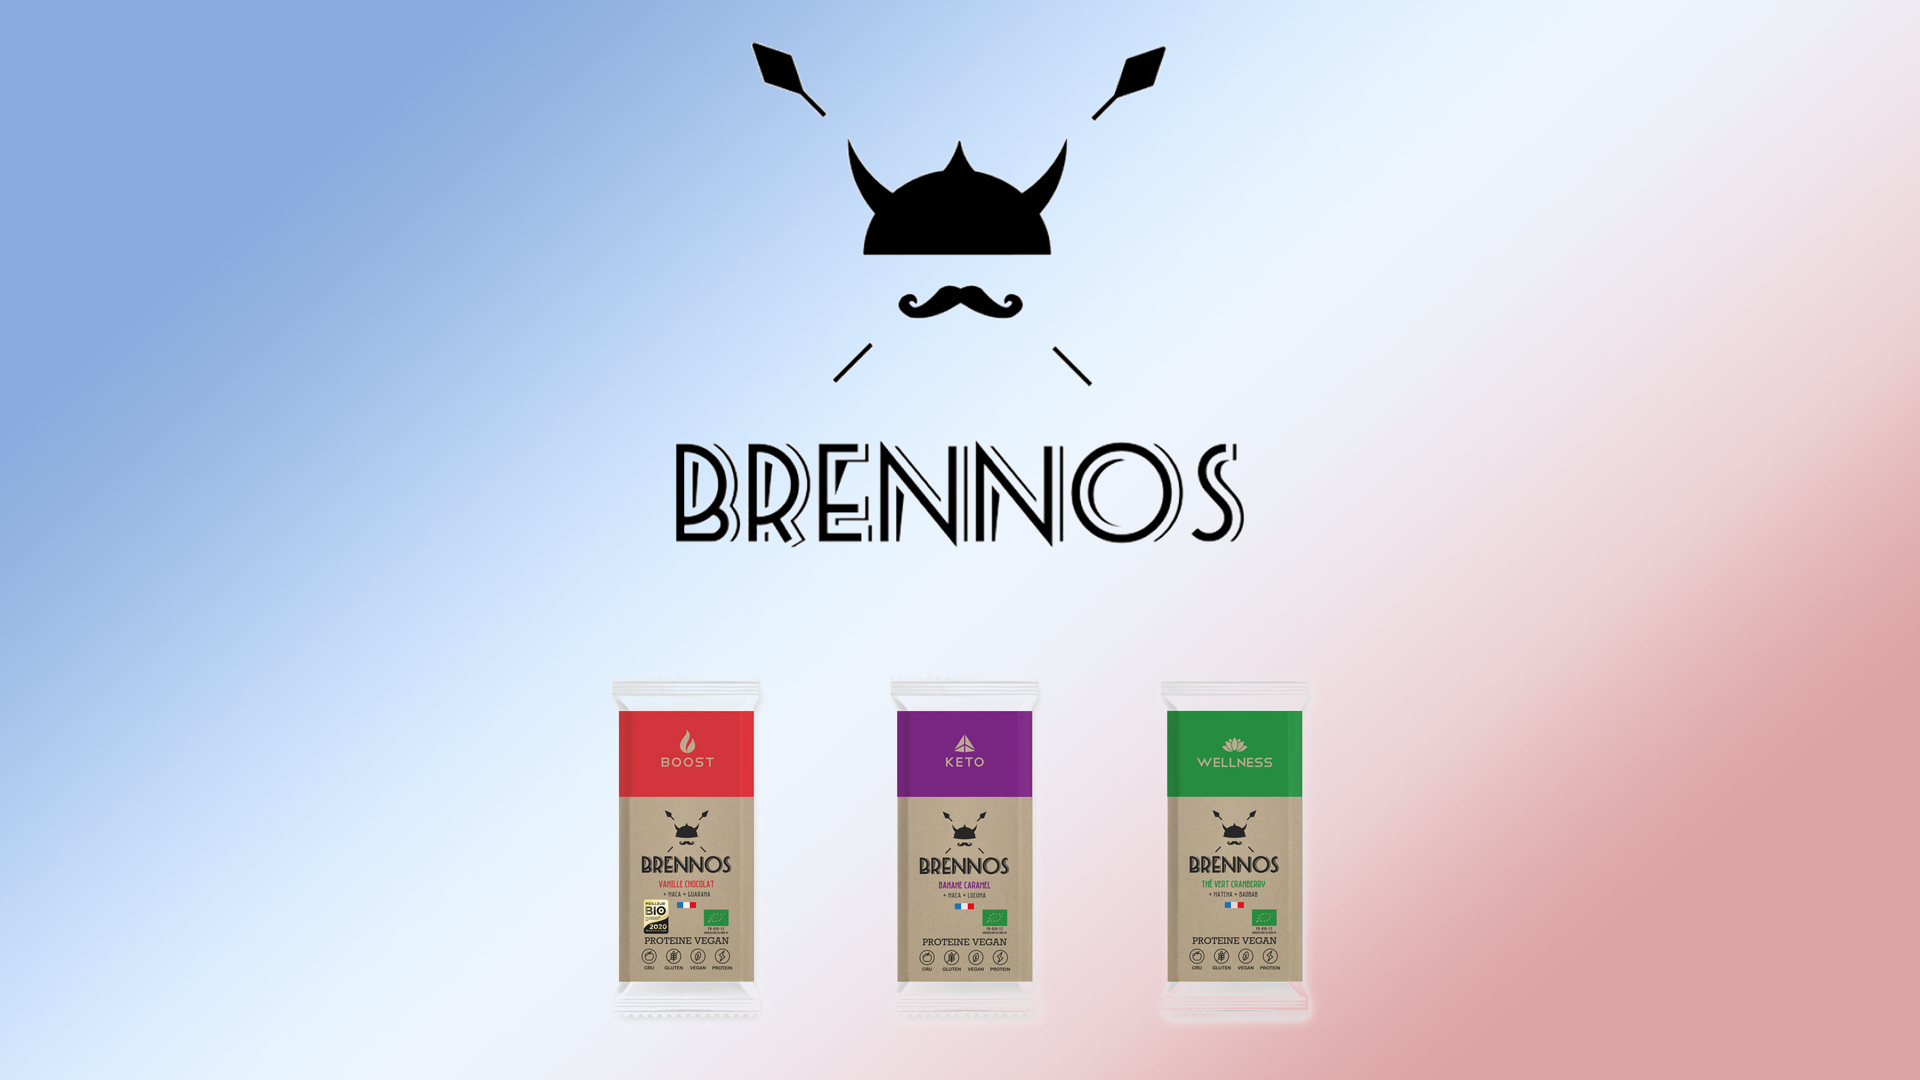 brennos aliments basques